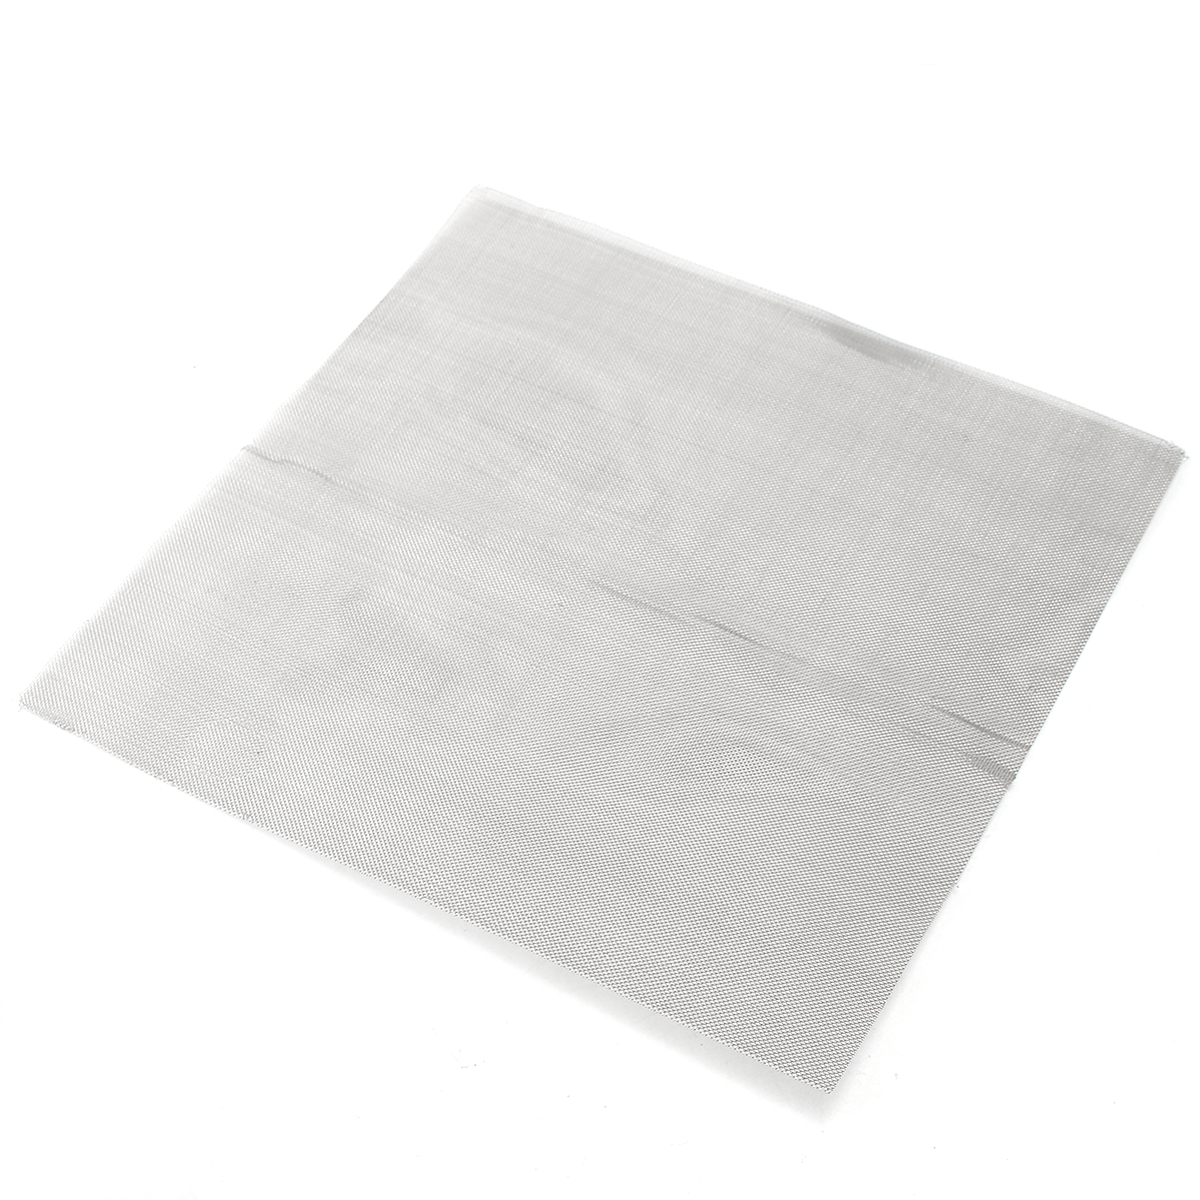 30x30cm Stainless Steel Woven Wire Filter Screen Sheet Filtration Cloth 30 Mesh